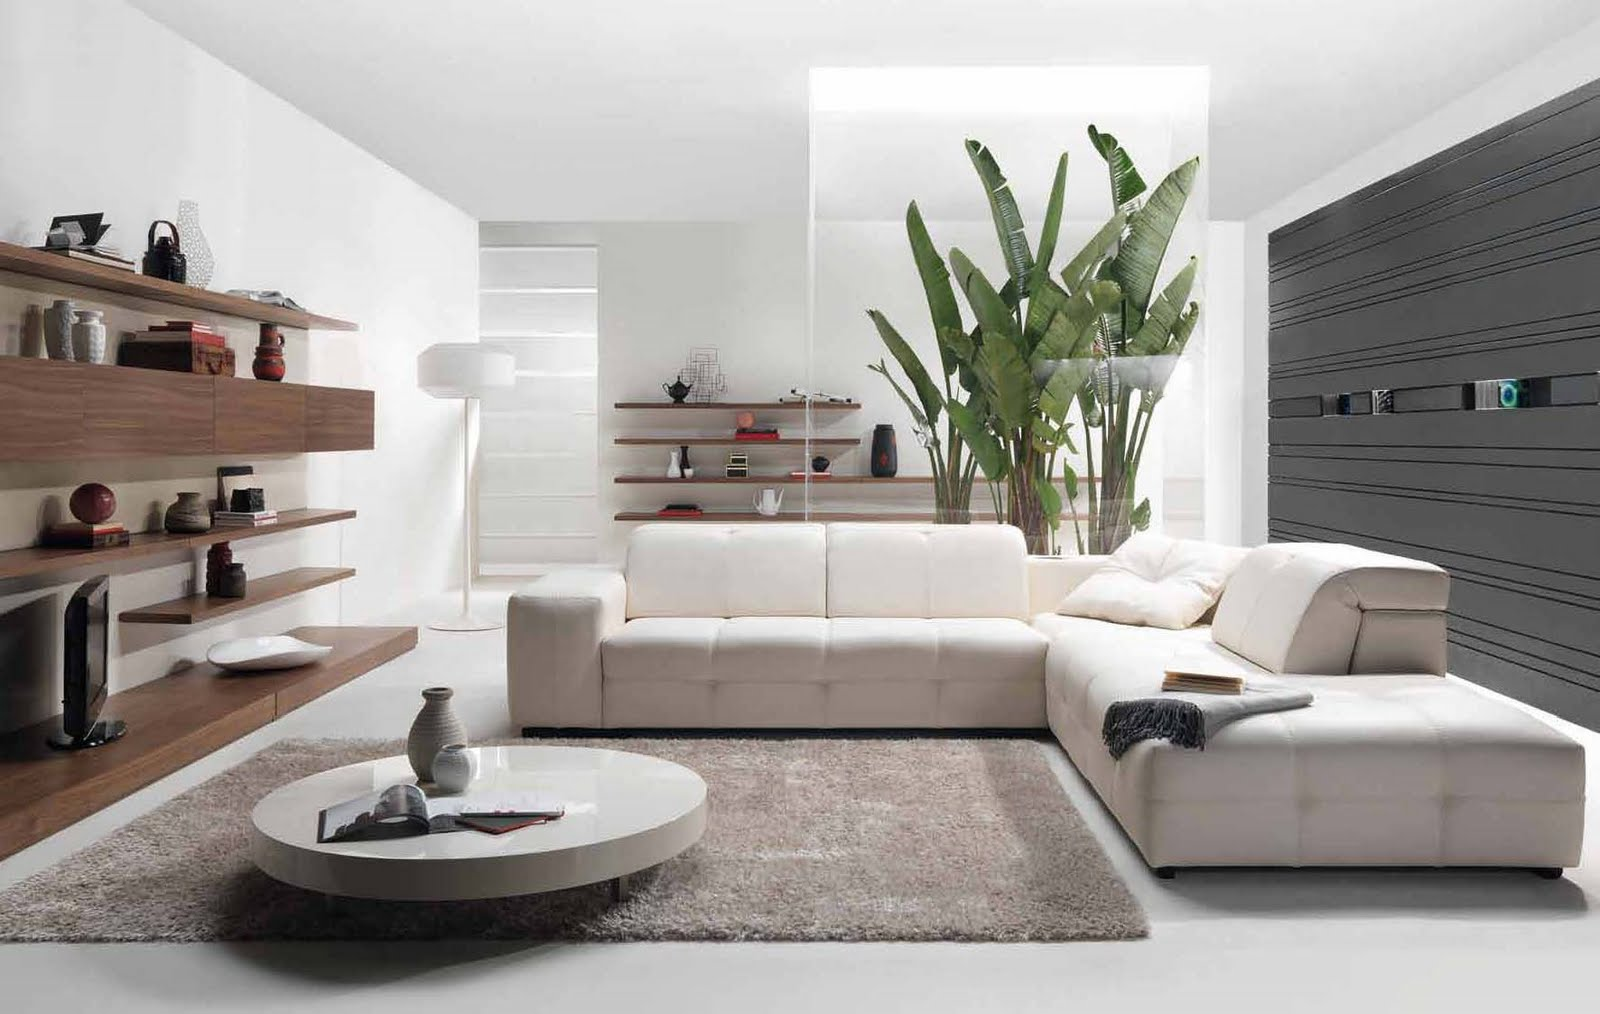 Future house design modern living room interior design for Interior decorating ideas for living room pictures